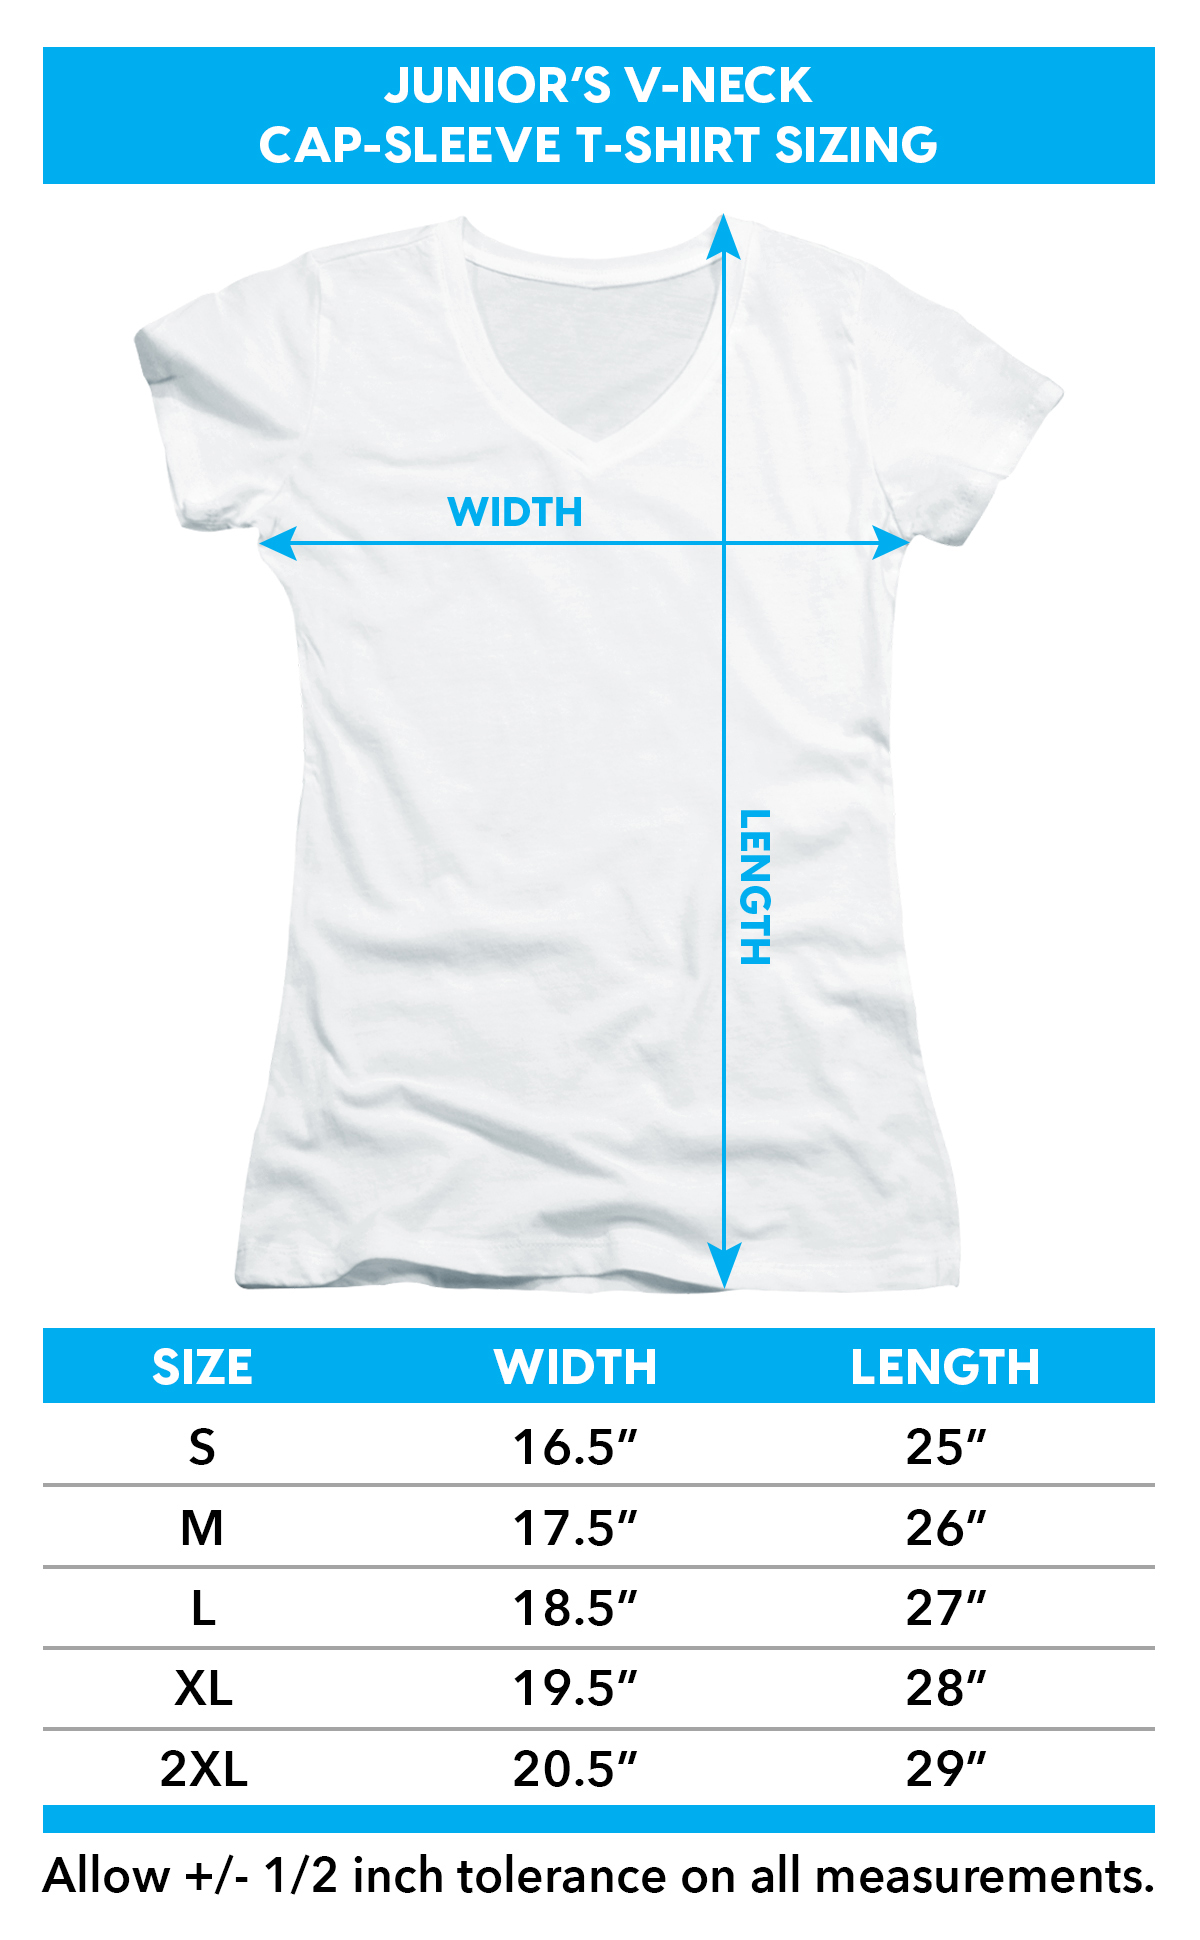 Sizing chart for Revenge of the Nerds Girls V Neck T-Shirt - Tri Lambda Sweater TRV-TCF314-JV